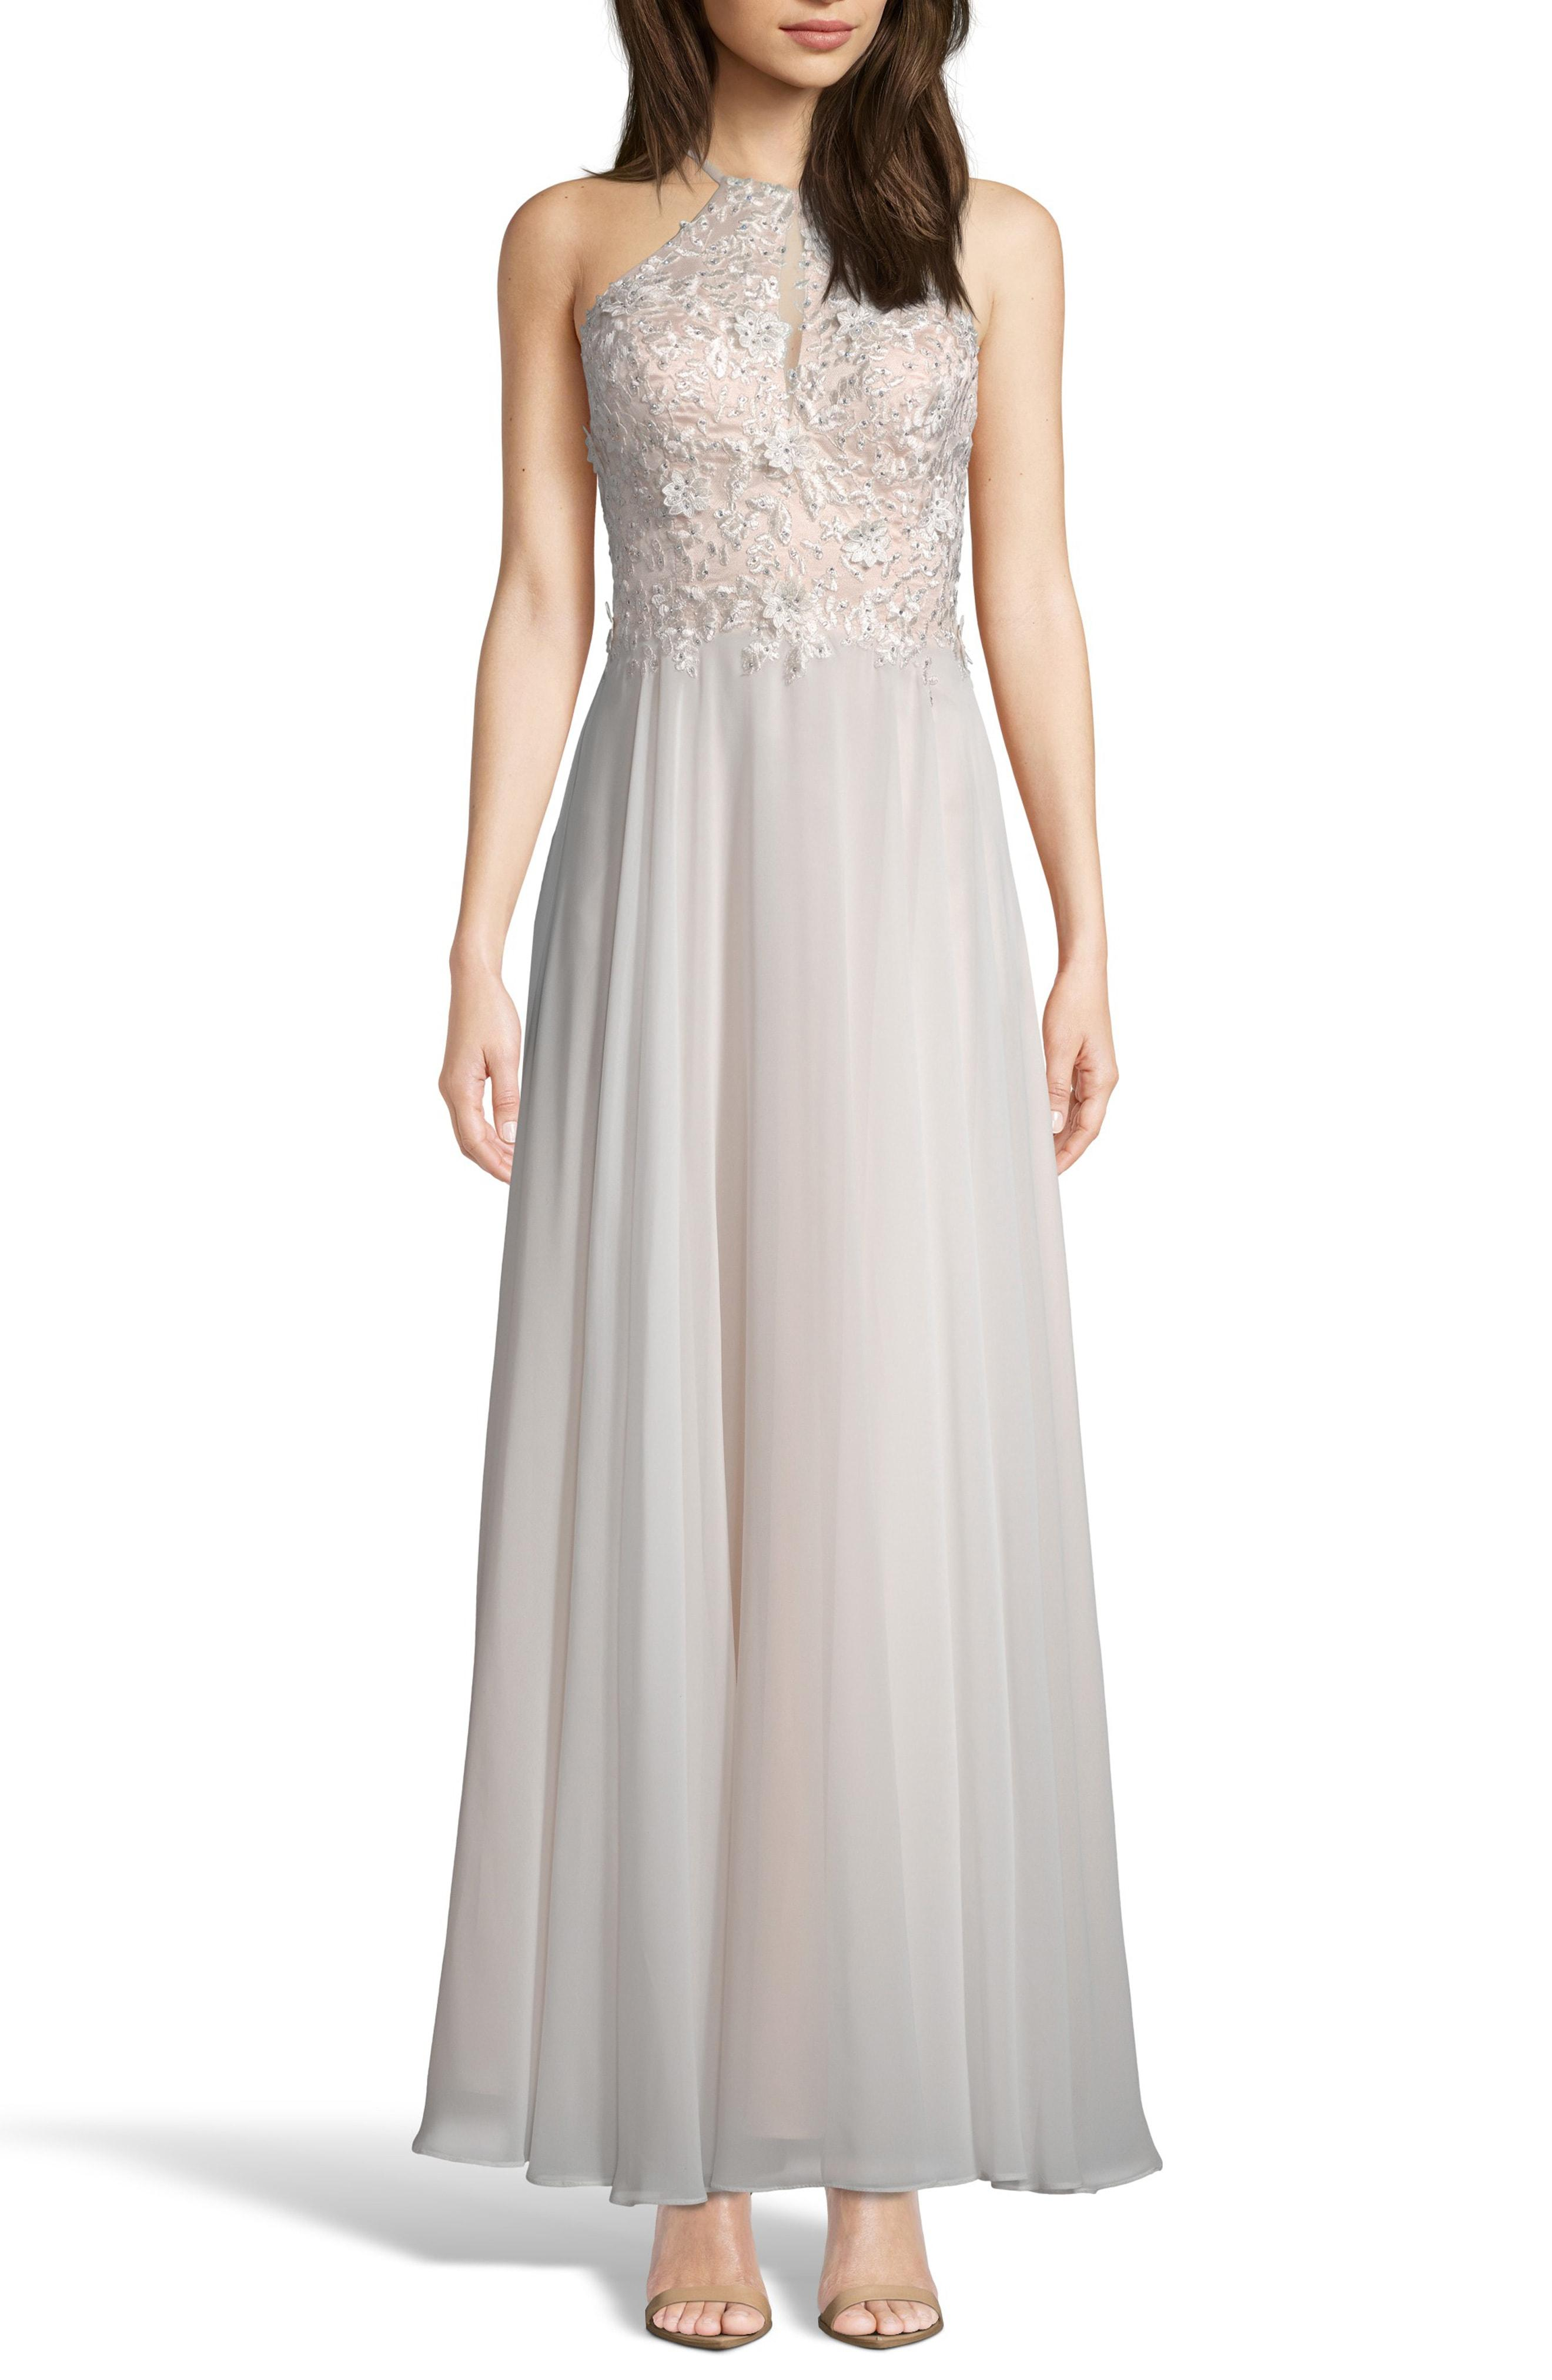 cc290307 Lyst - Xscape Beaded 3d Floral Lace Chiffon Evening Dress in White